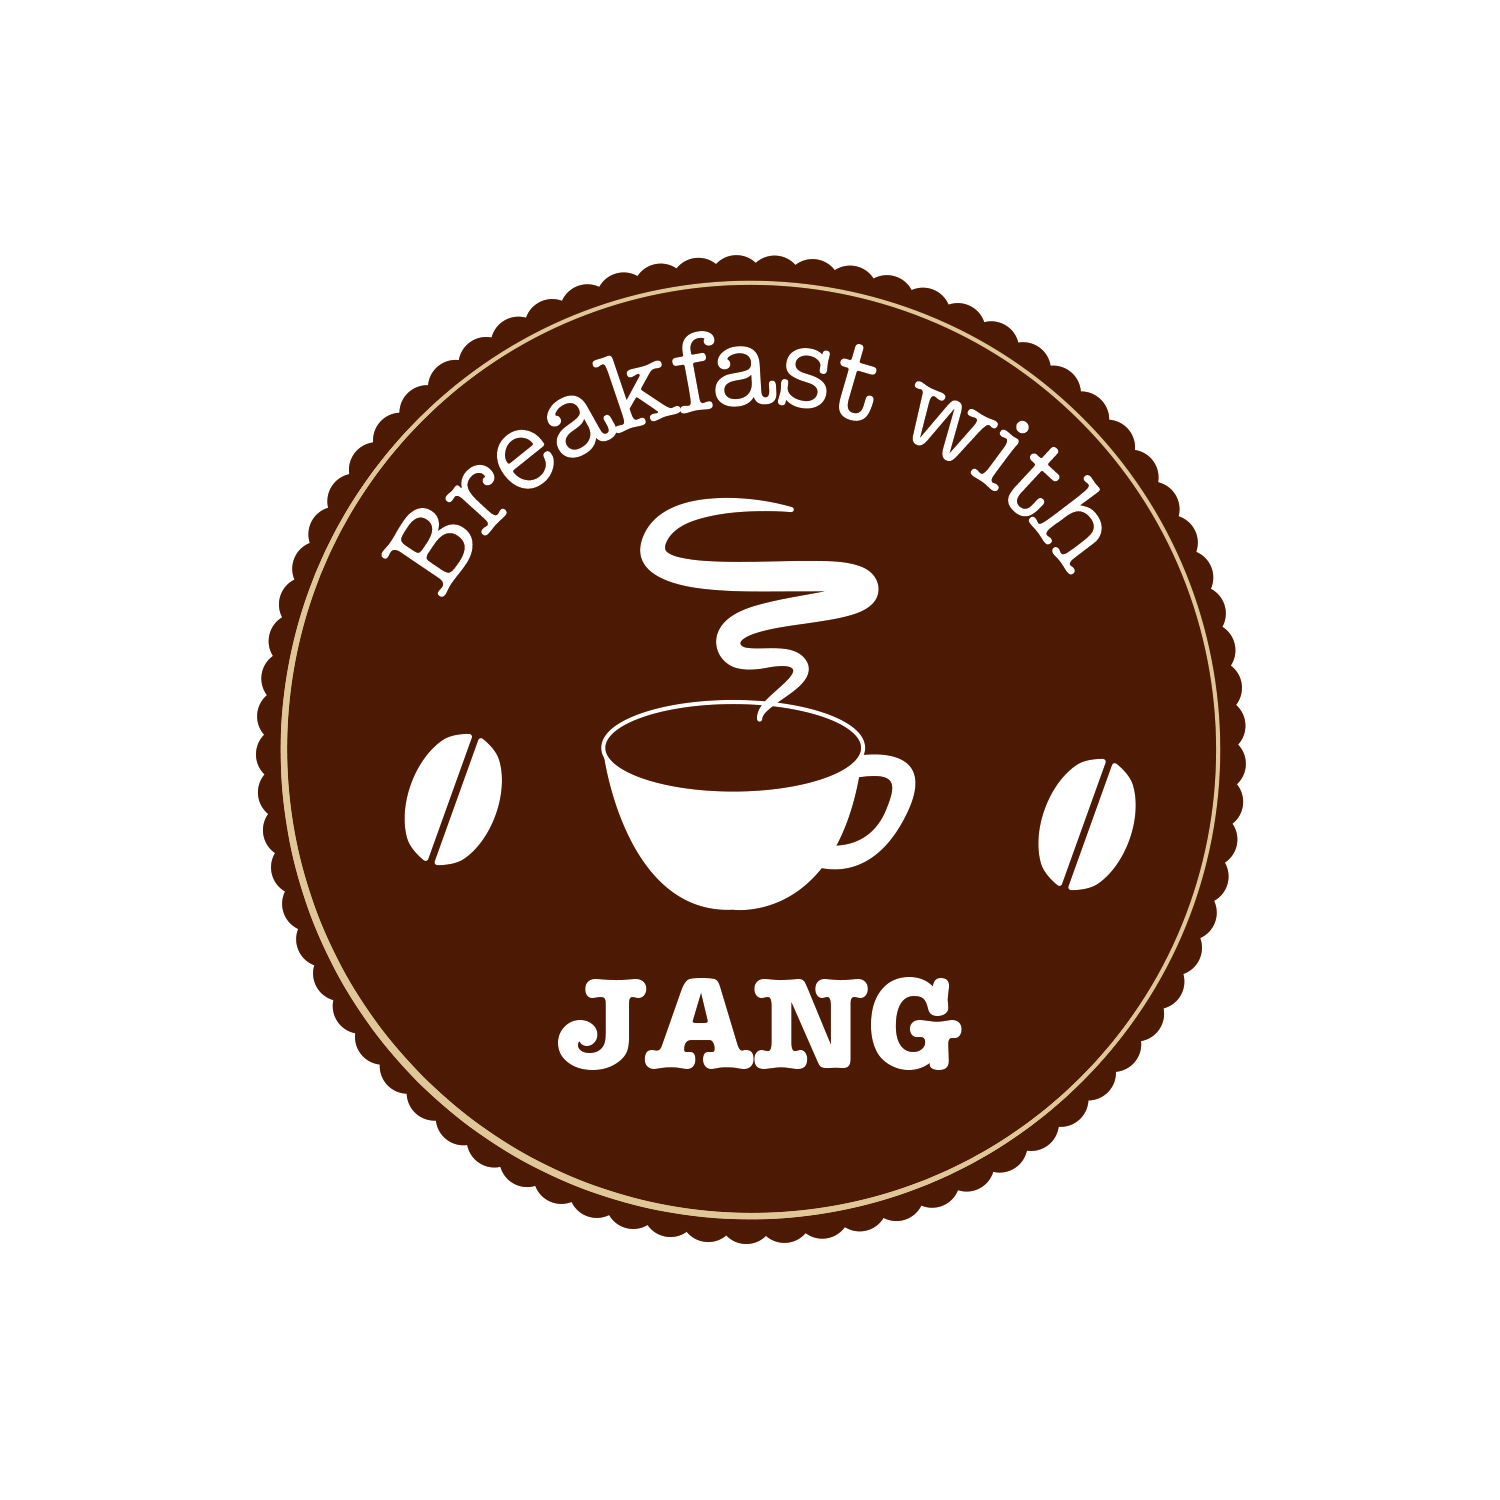 Breakfast with Jang